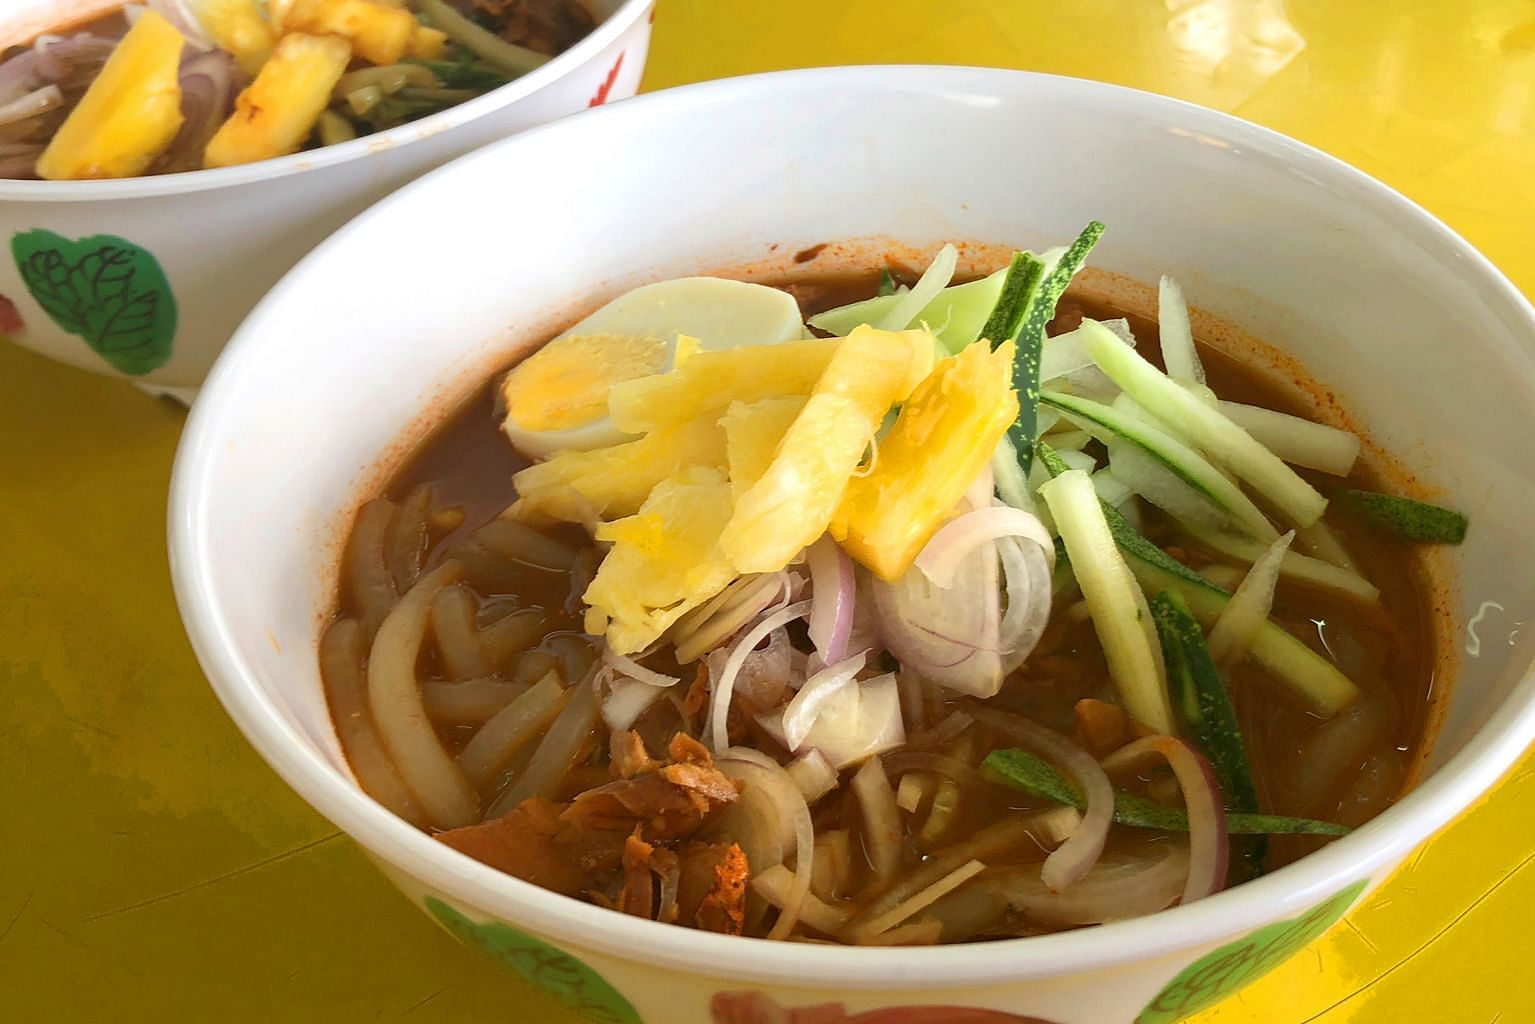 This stall sells the Taiping, and not the Penang, version of assam laksa, which does not require prawn paste.